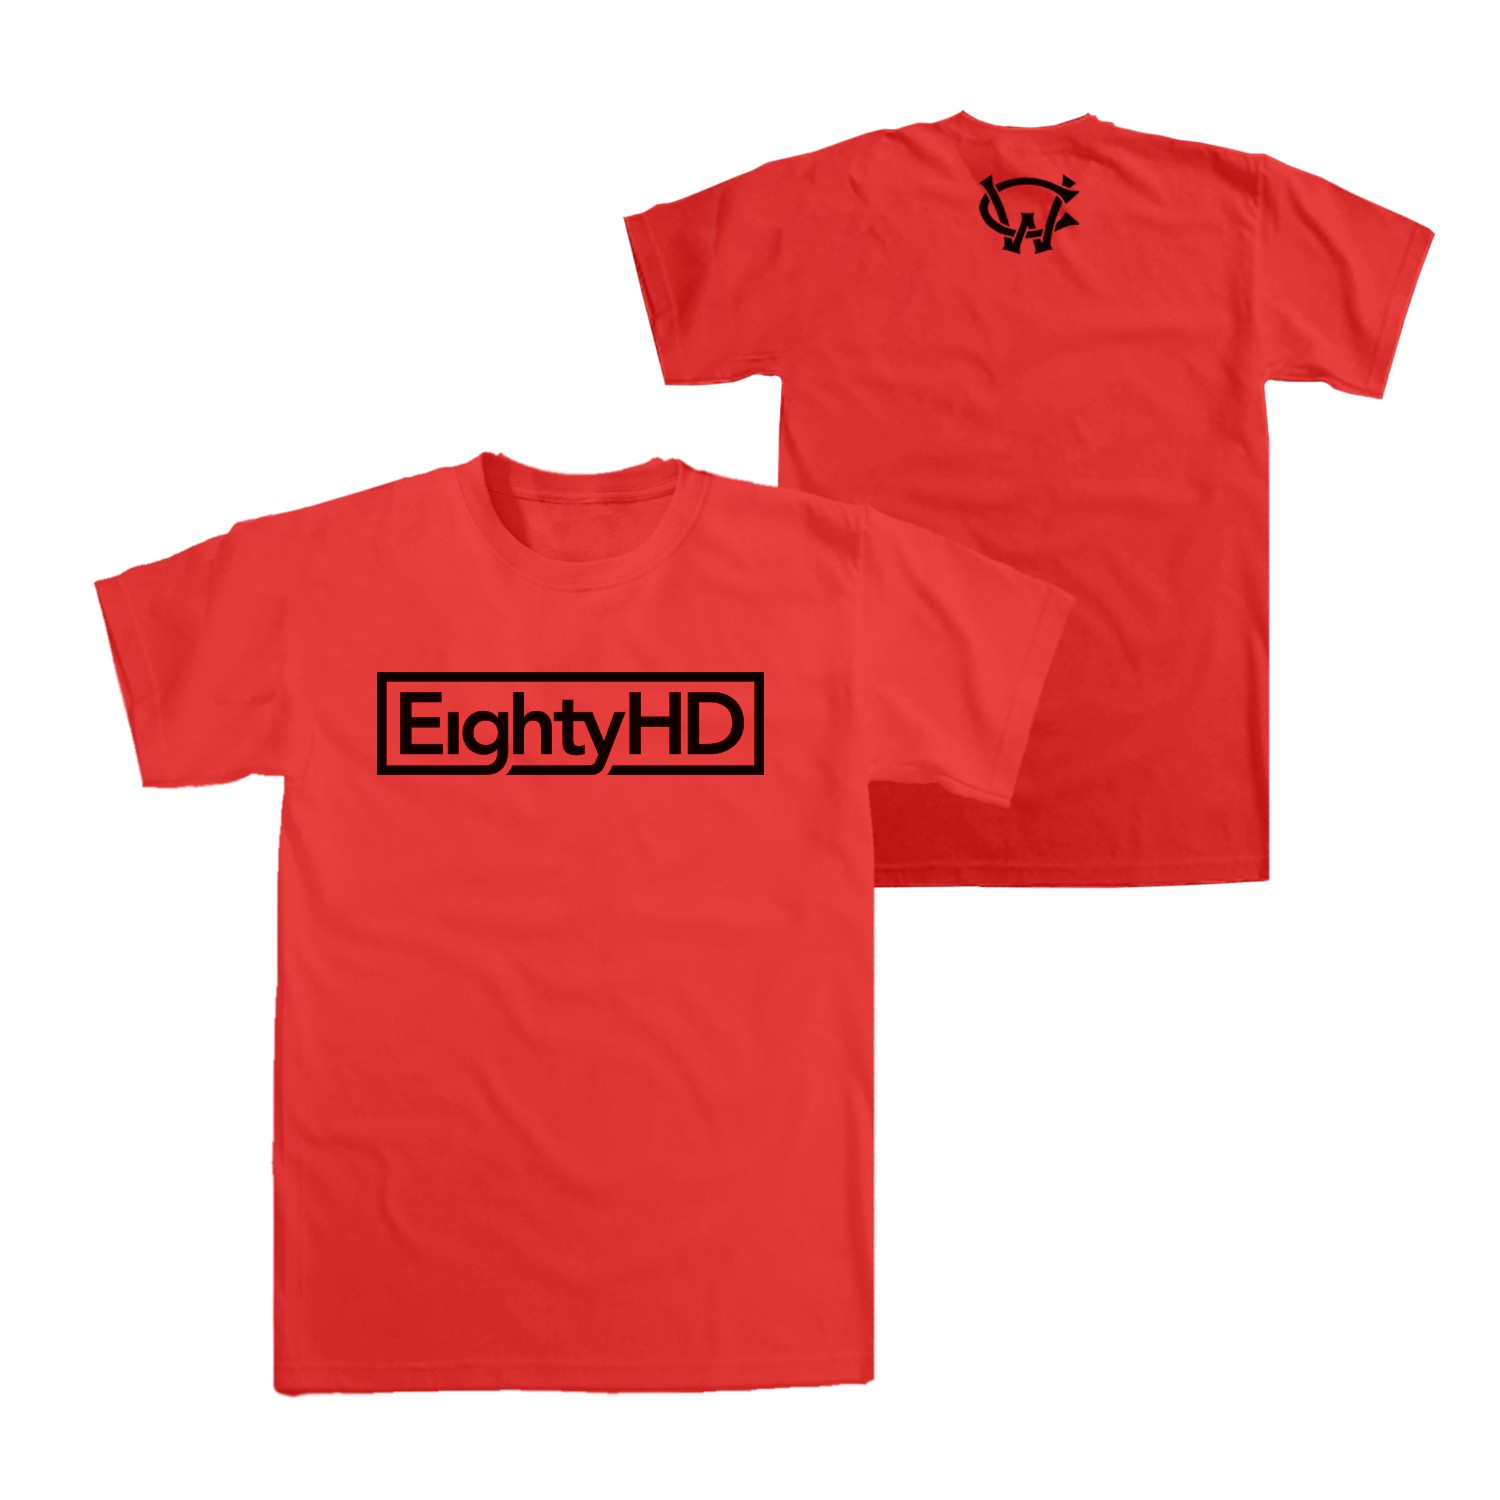 EightyHD T-shirt